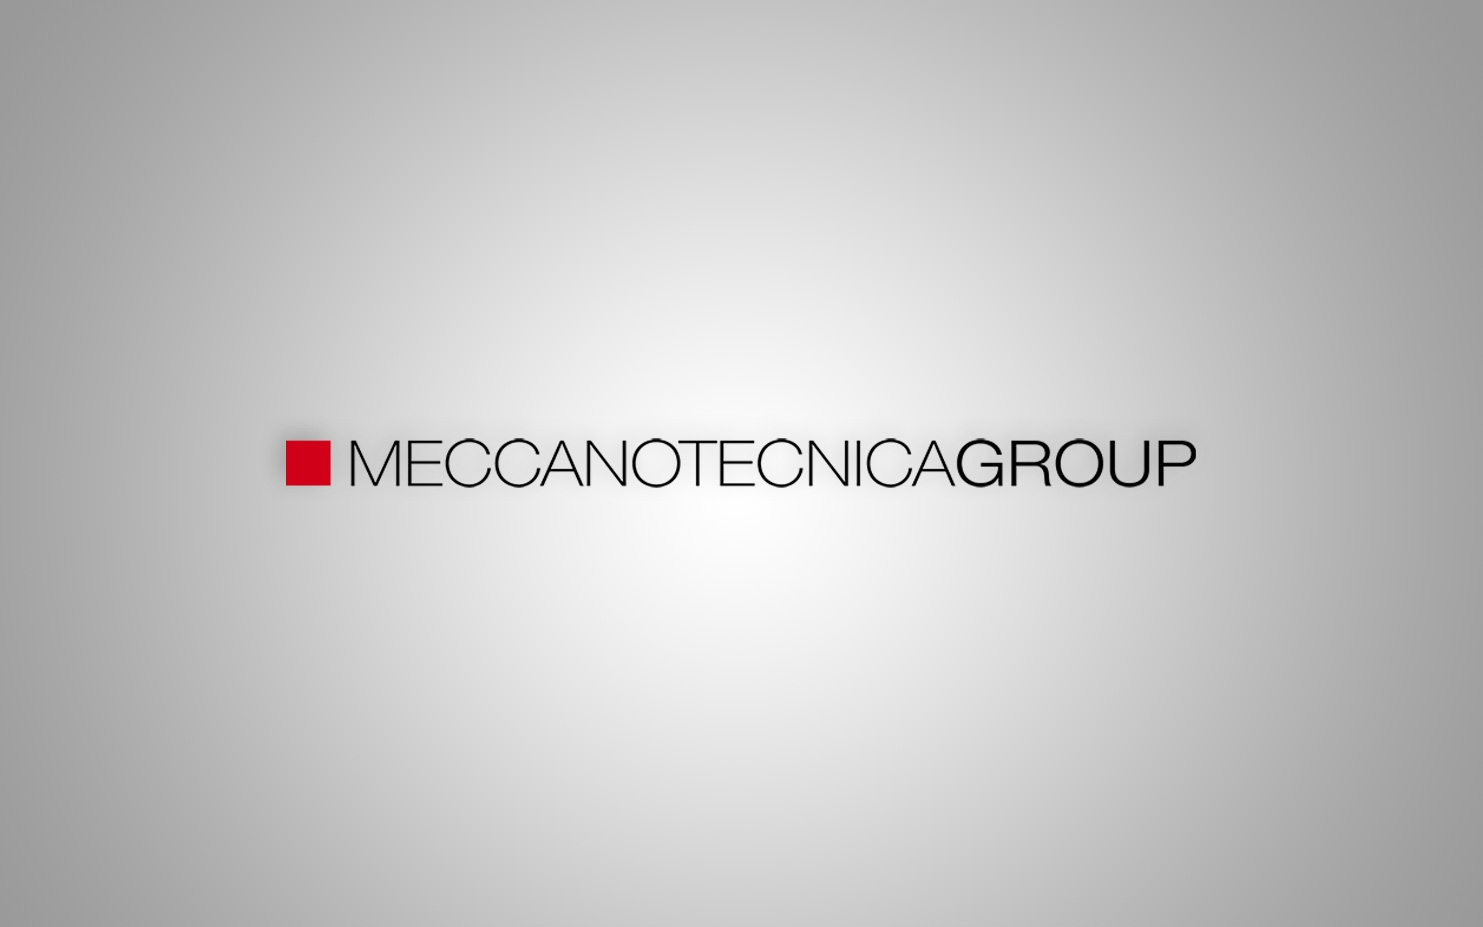 Operational status of the Meccanotecnica Group